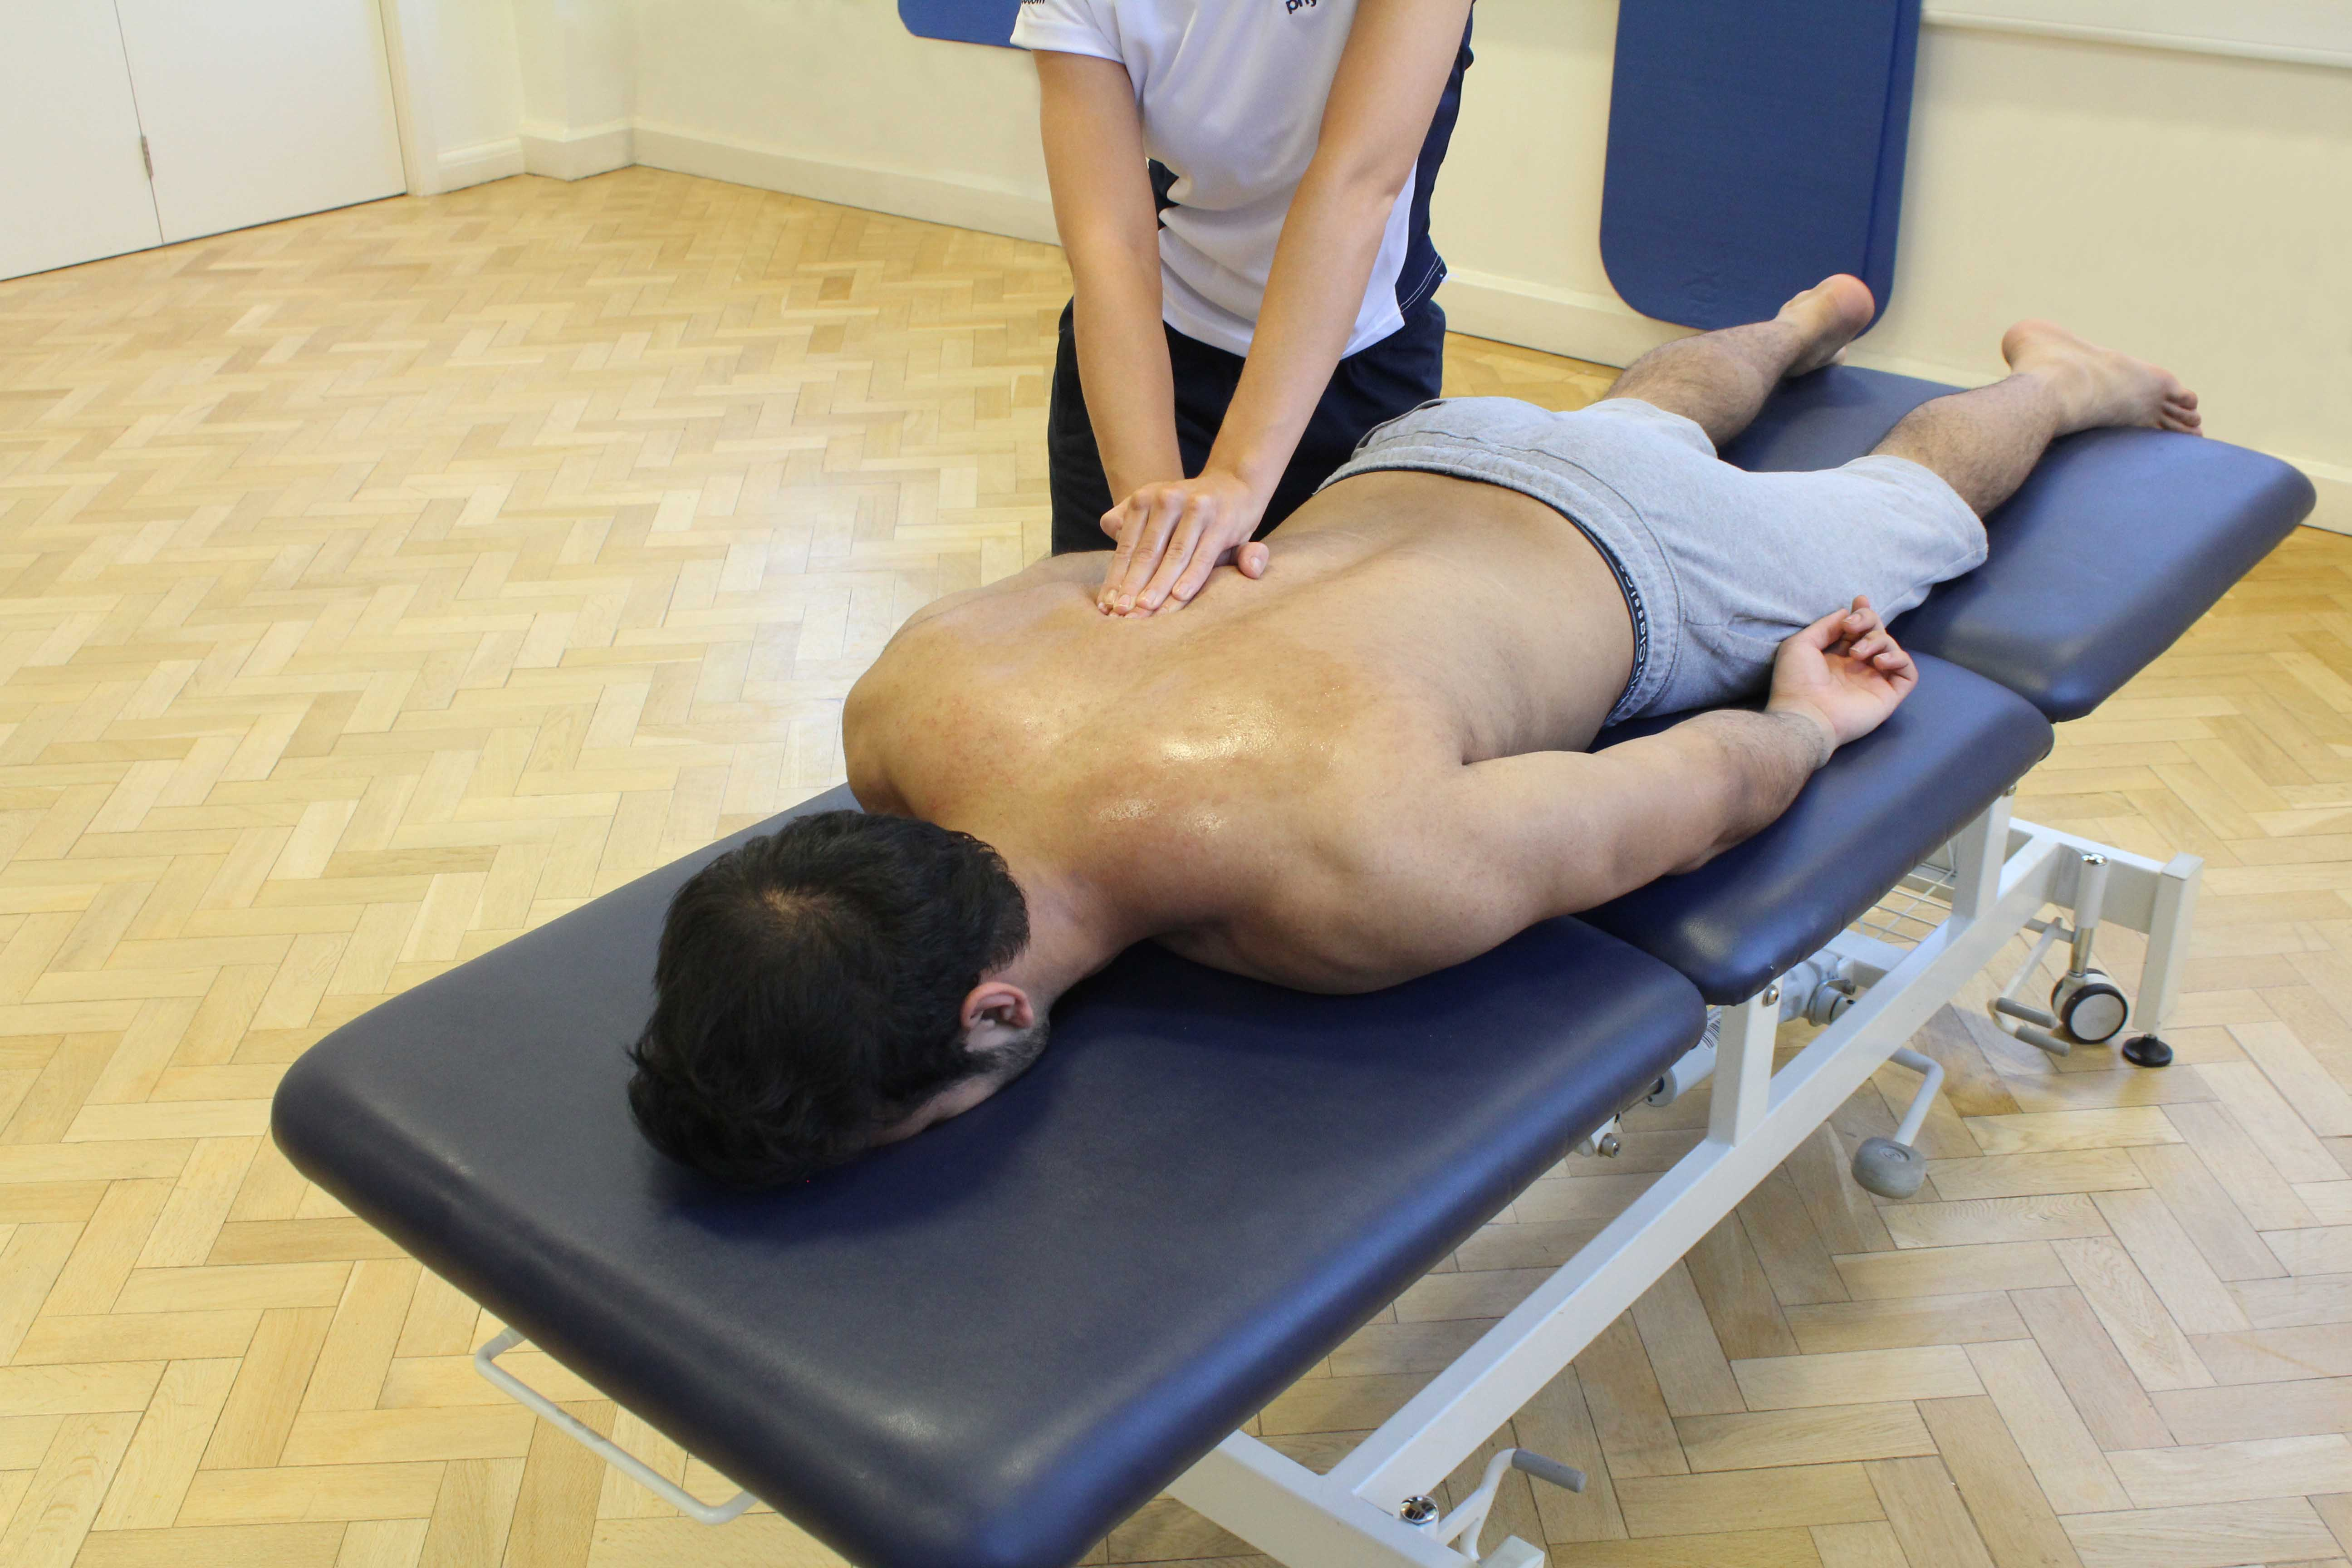 Soft tissue massage of mid thoracic spine region